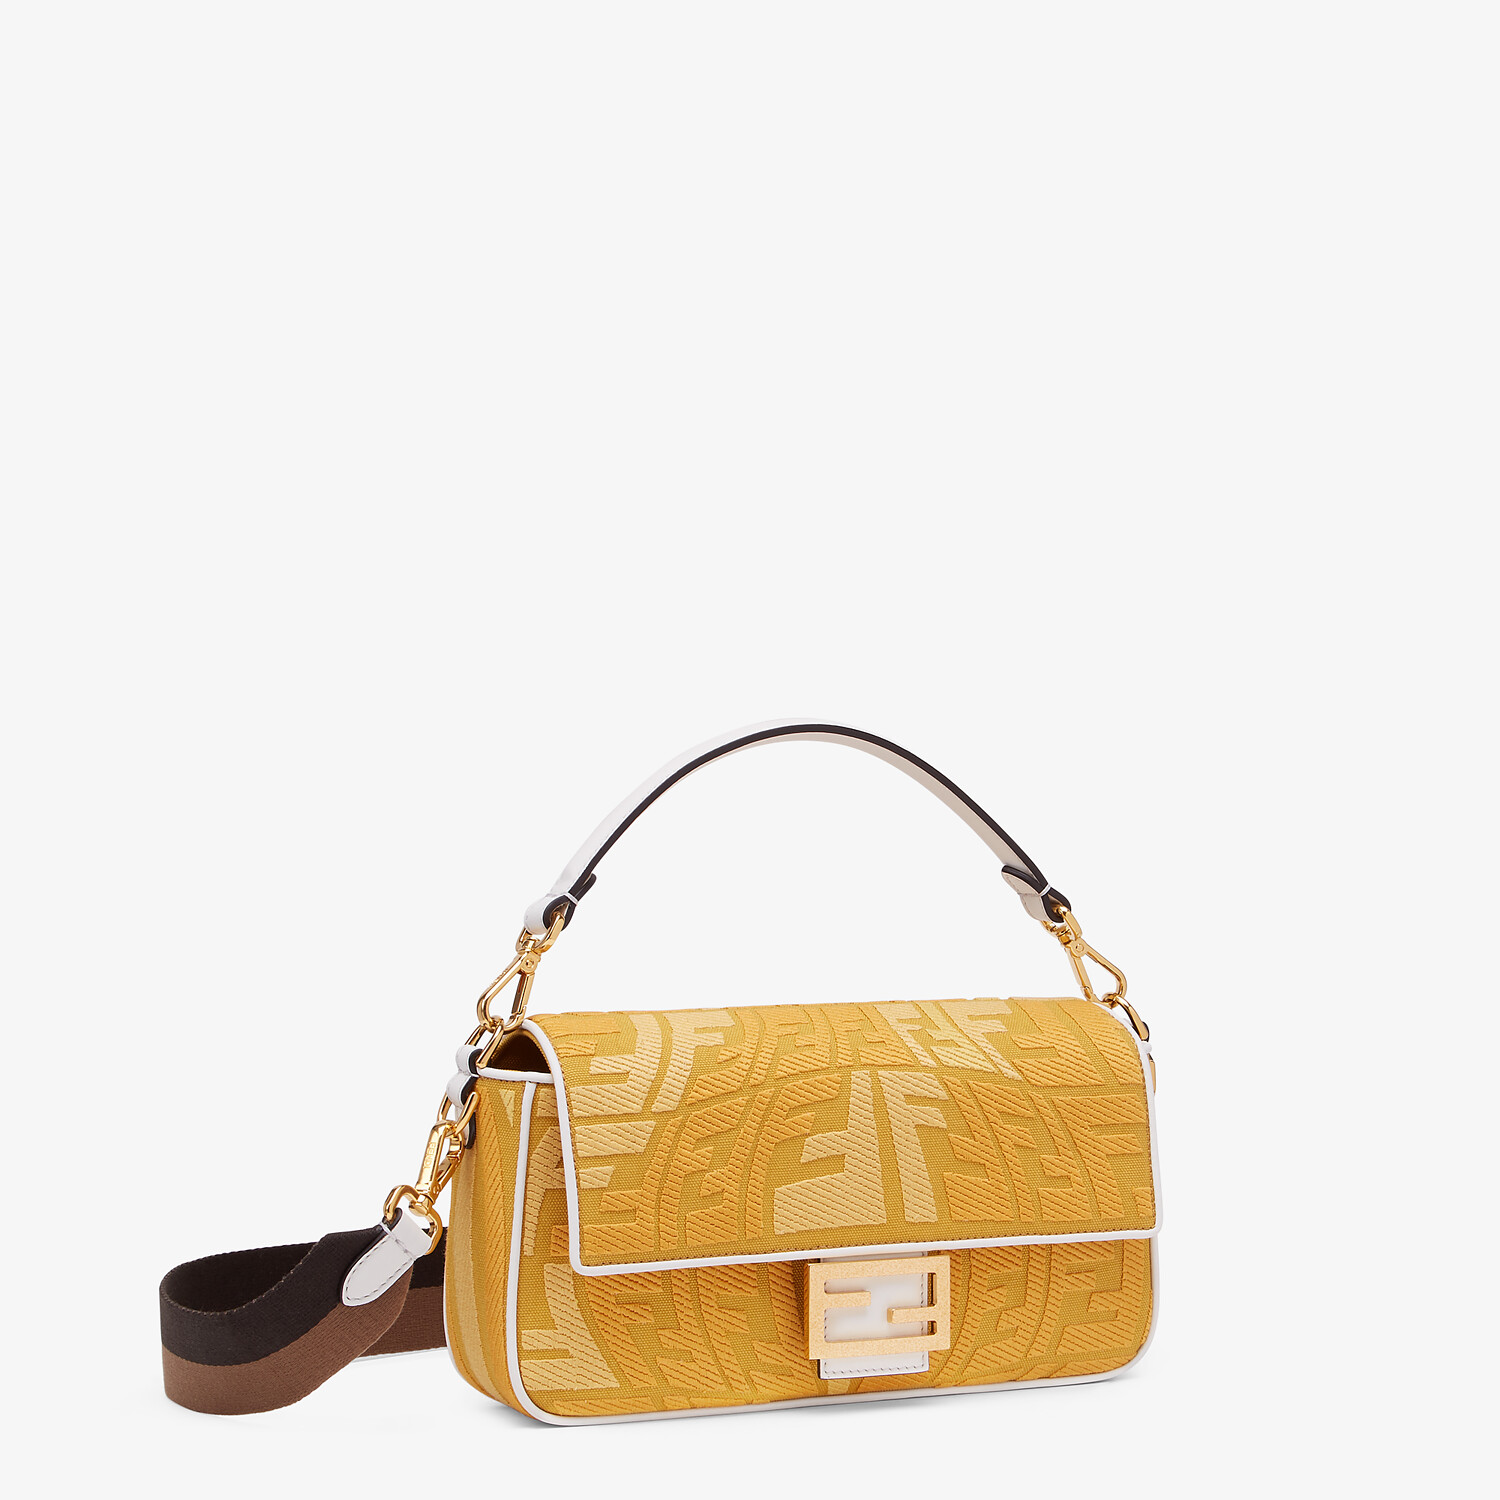 FENDI BAGUETTE - Embroidered yellow canvas bag - view 2 detail